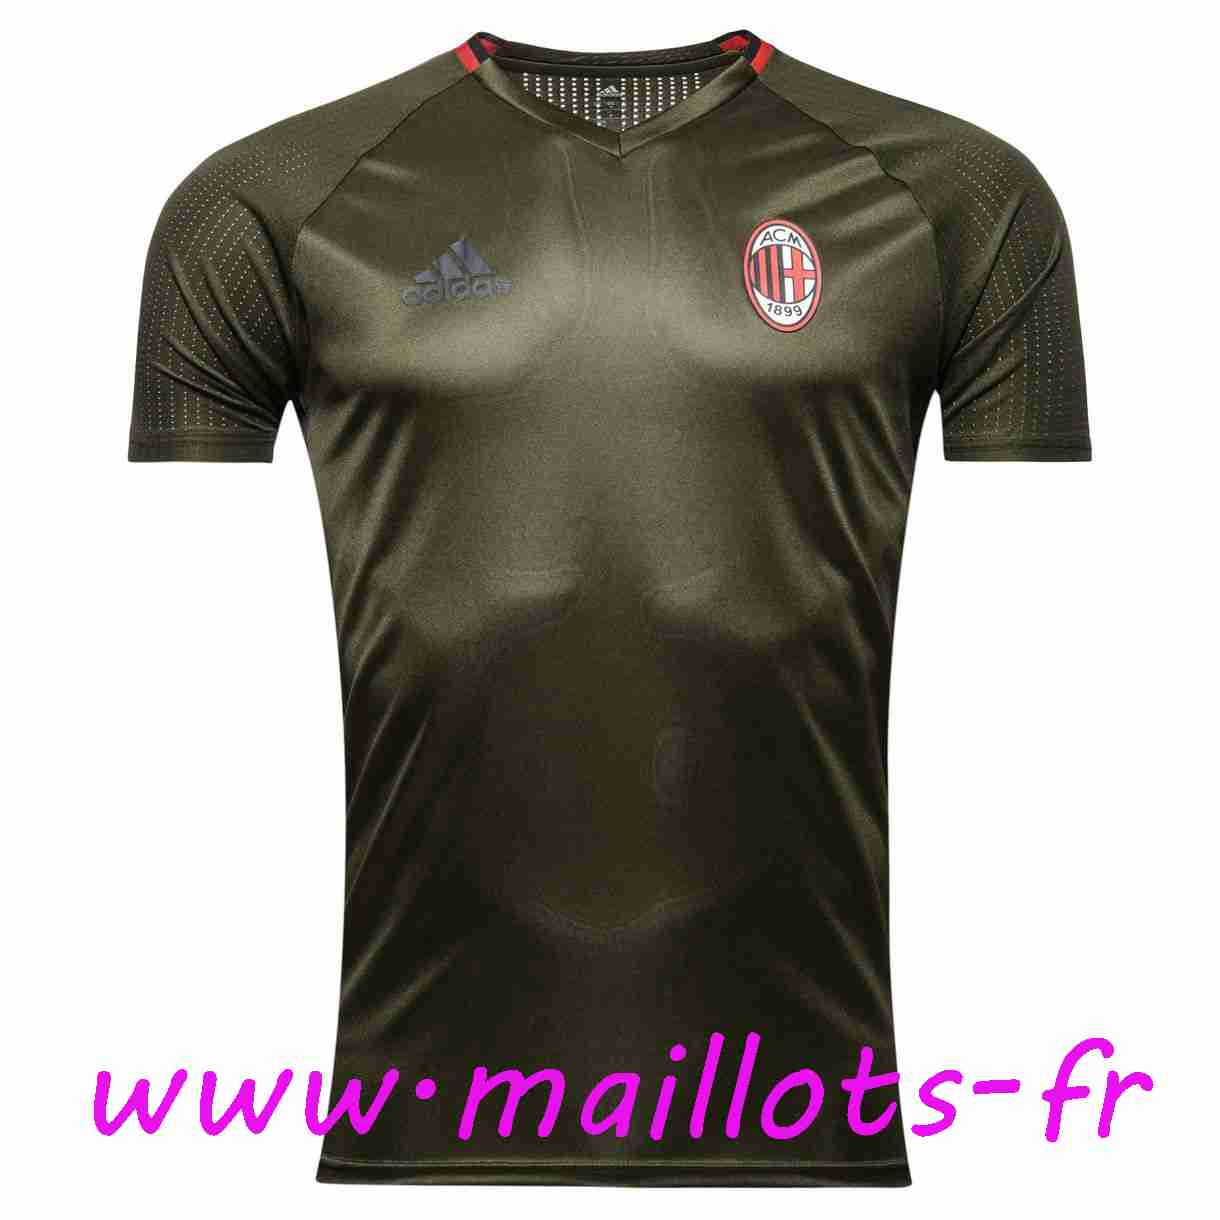 maillots-fr - Training T-Shirt Milan AC Gris Fonce 2016 2017